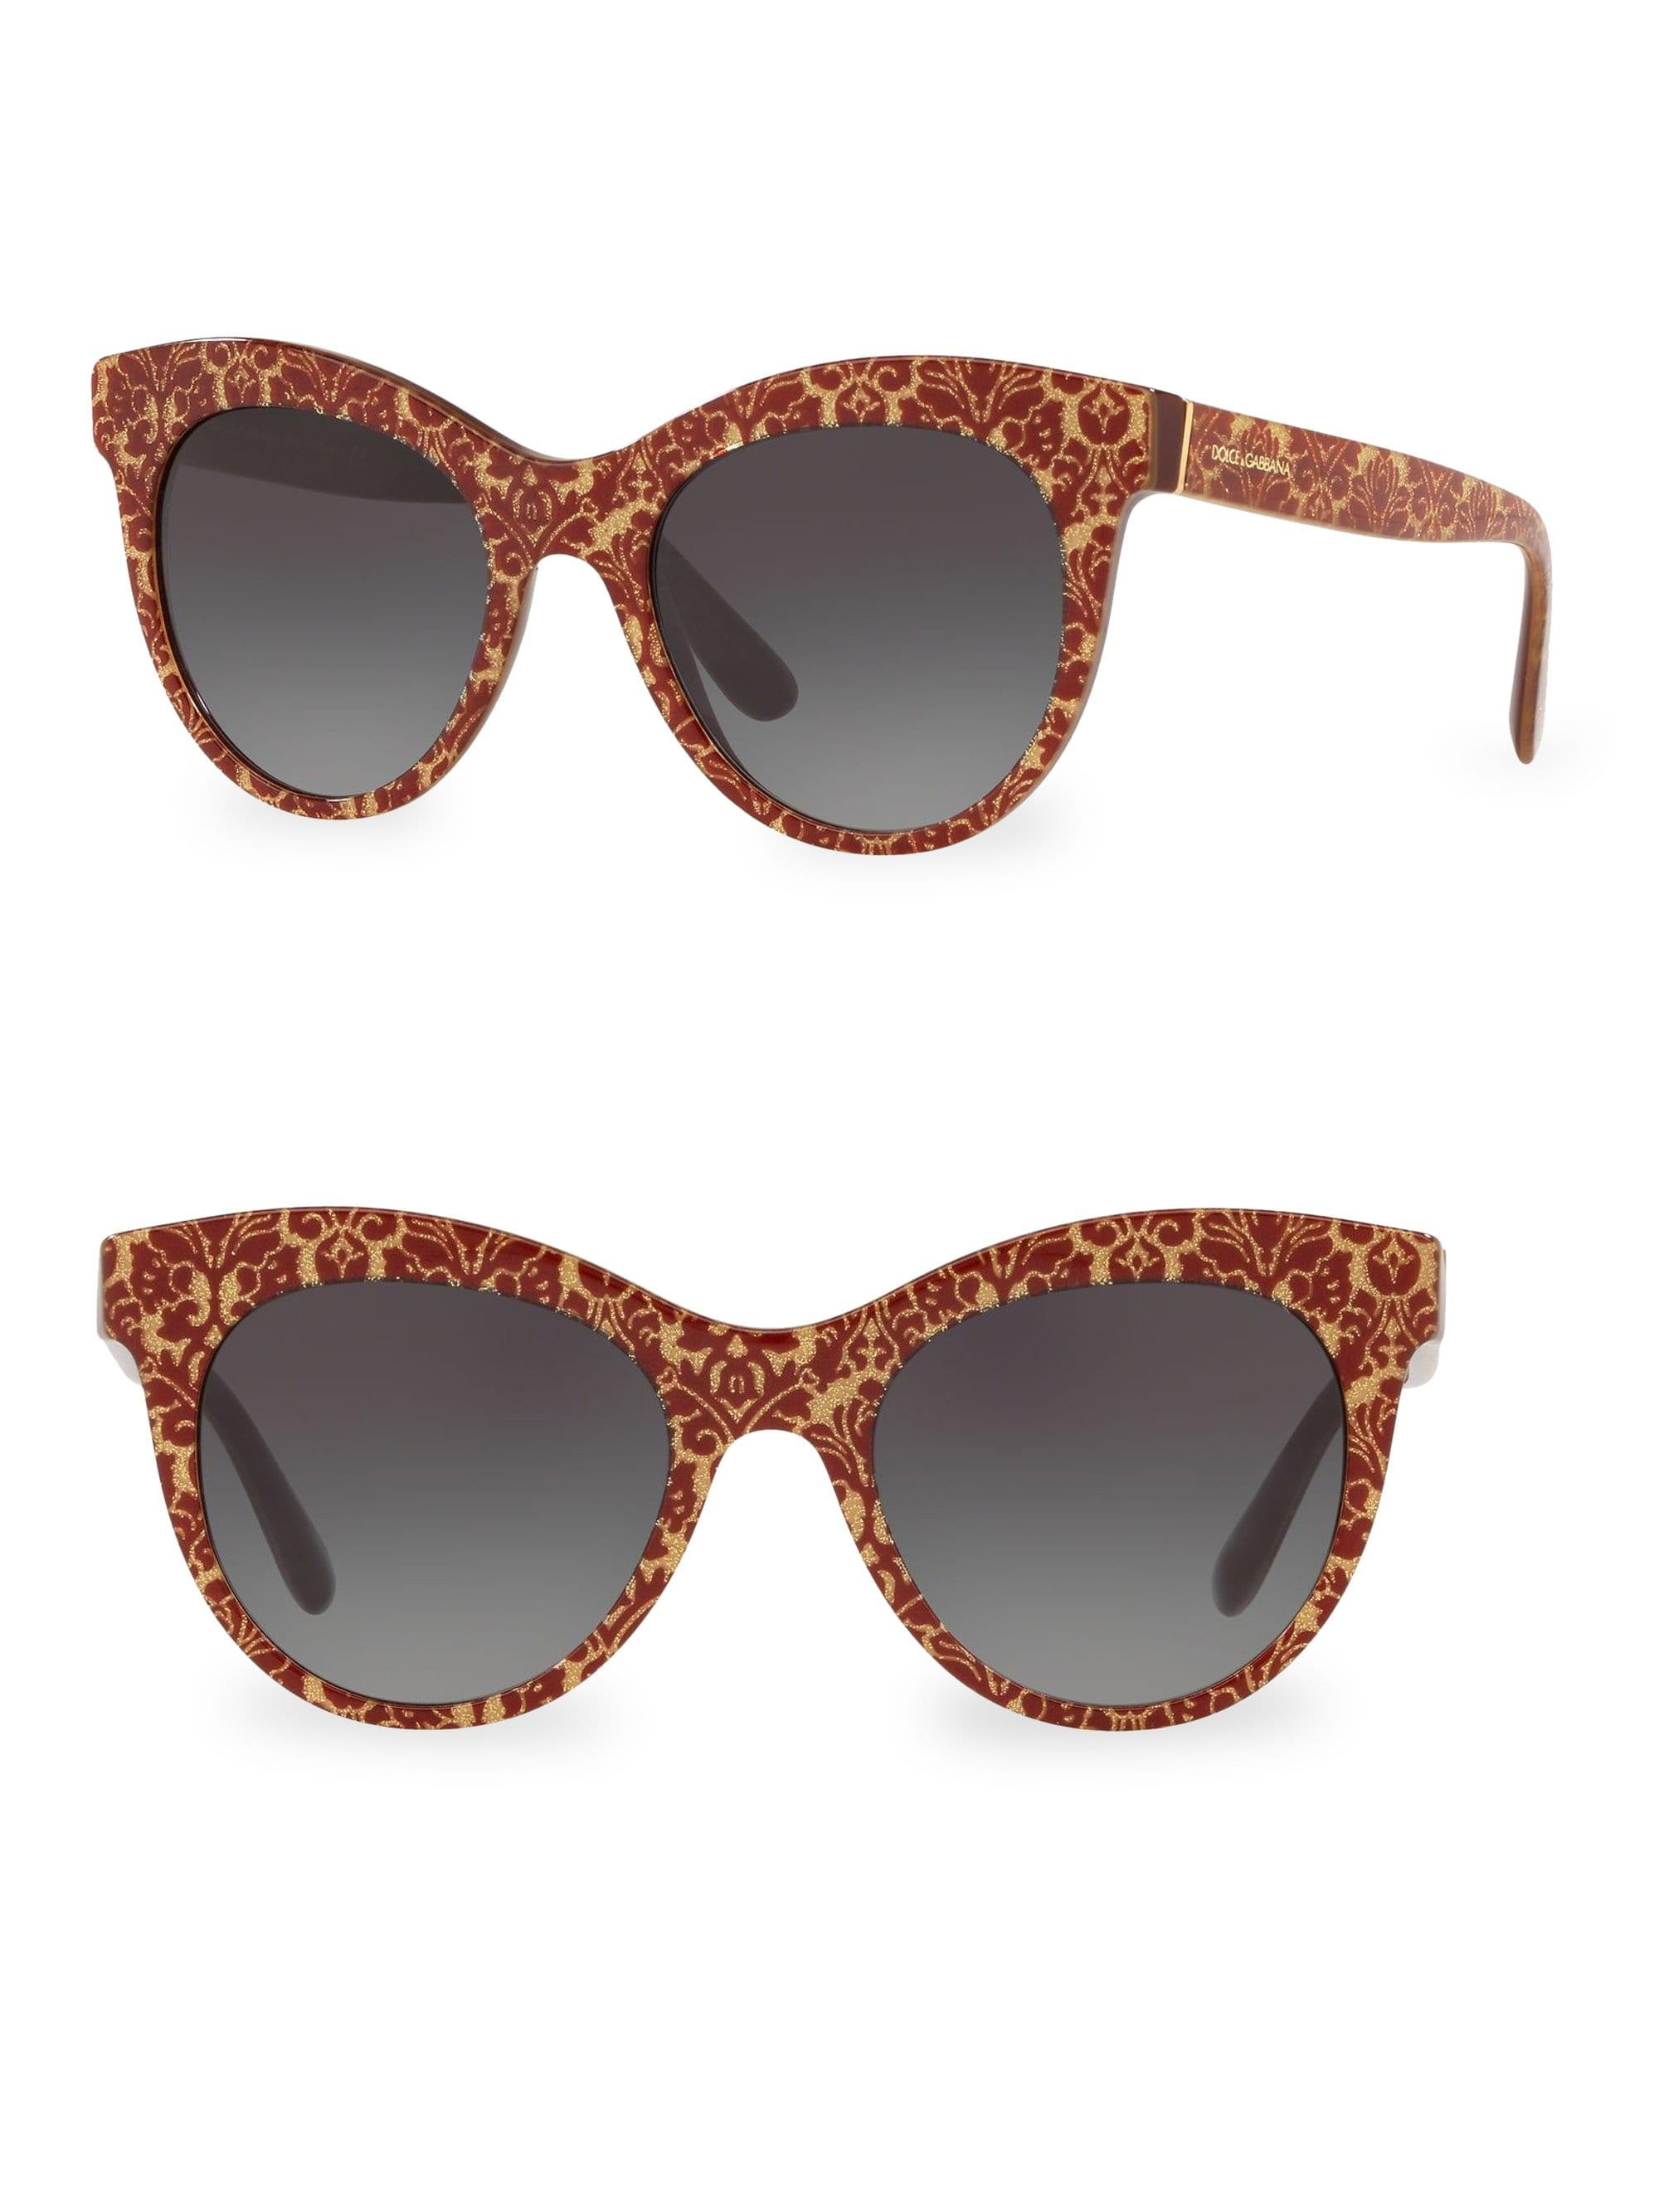 a015d854ef4 Dolce   Gabbana. Metallic Women s Dg4311 Glitter Floral 51mm Cat Eye  Sunglasses - Red Gold